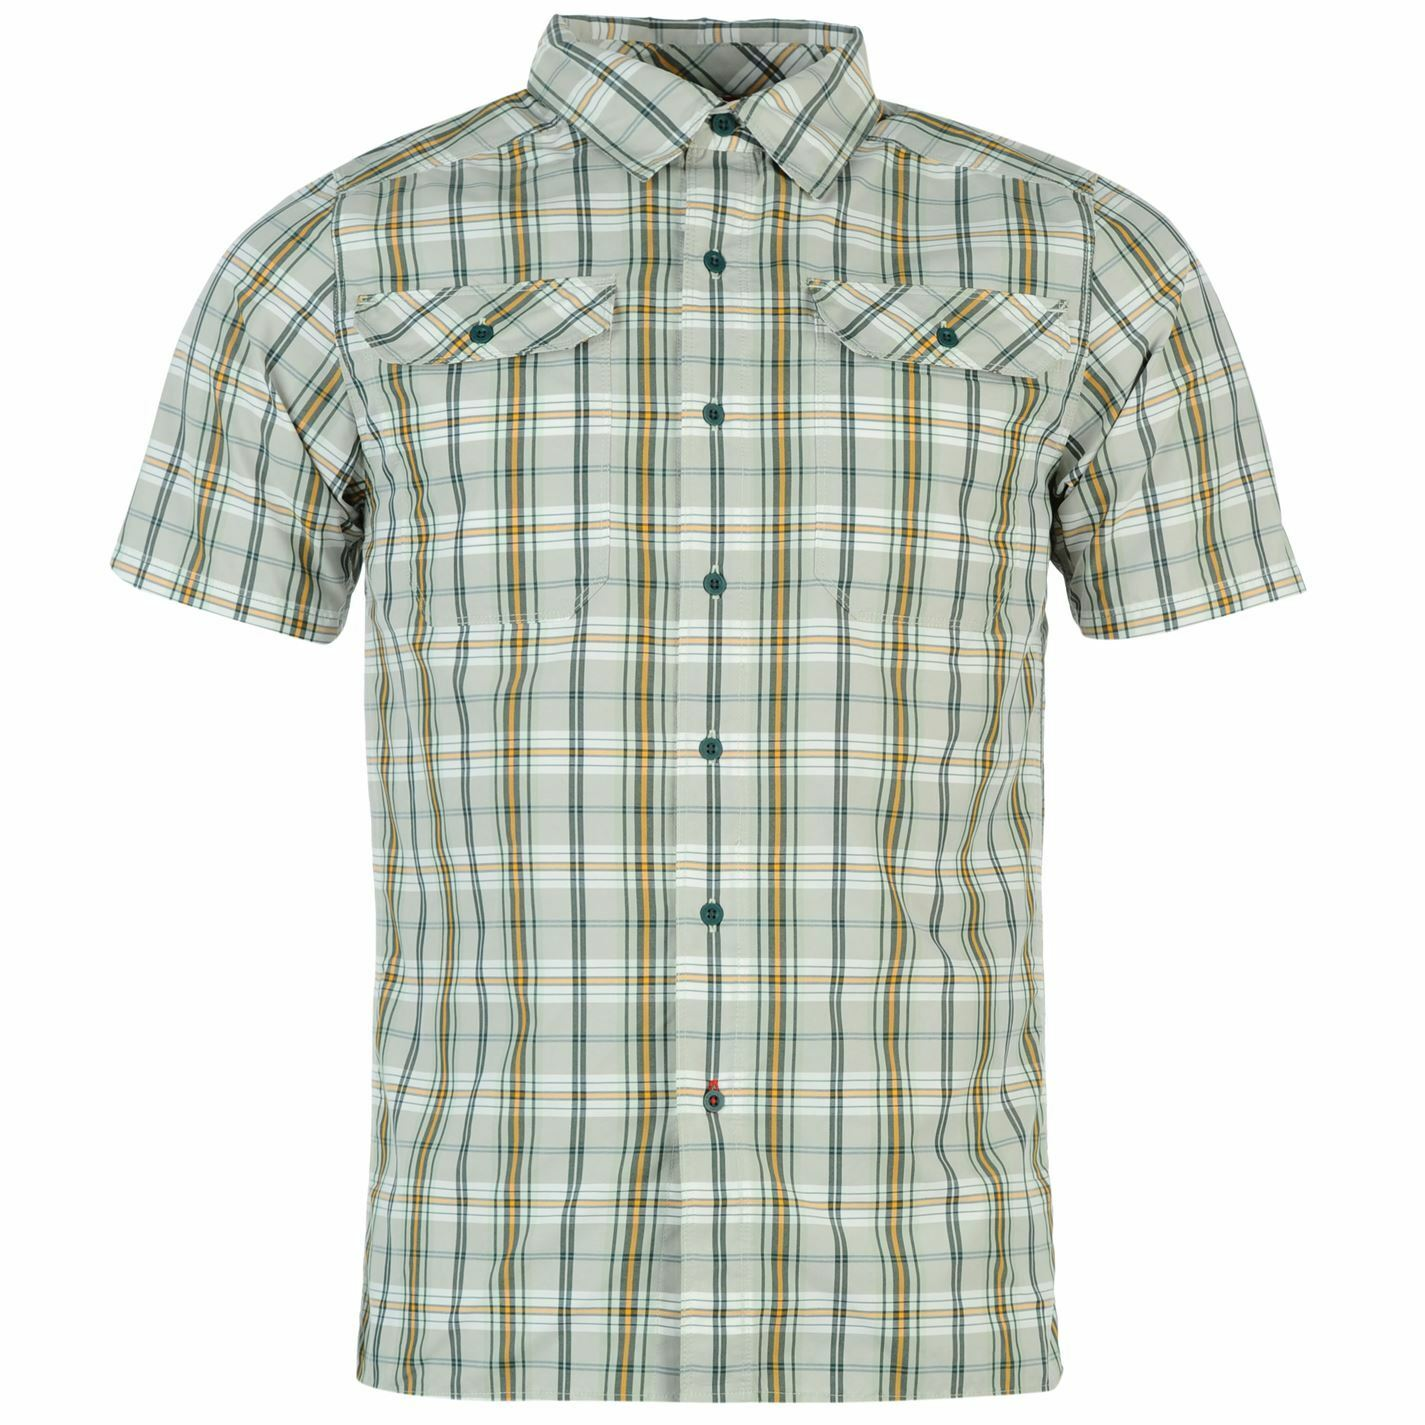 The North Face Hemd Pine Shirt Mens Size Small  RRP .49